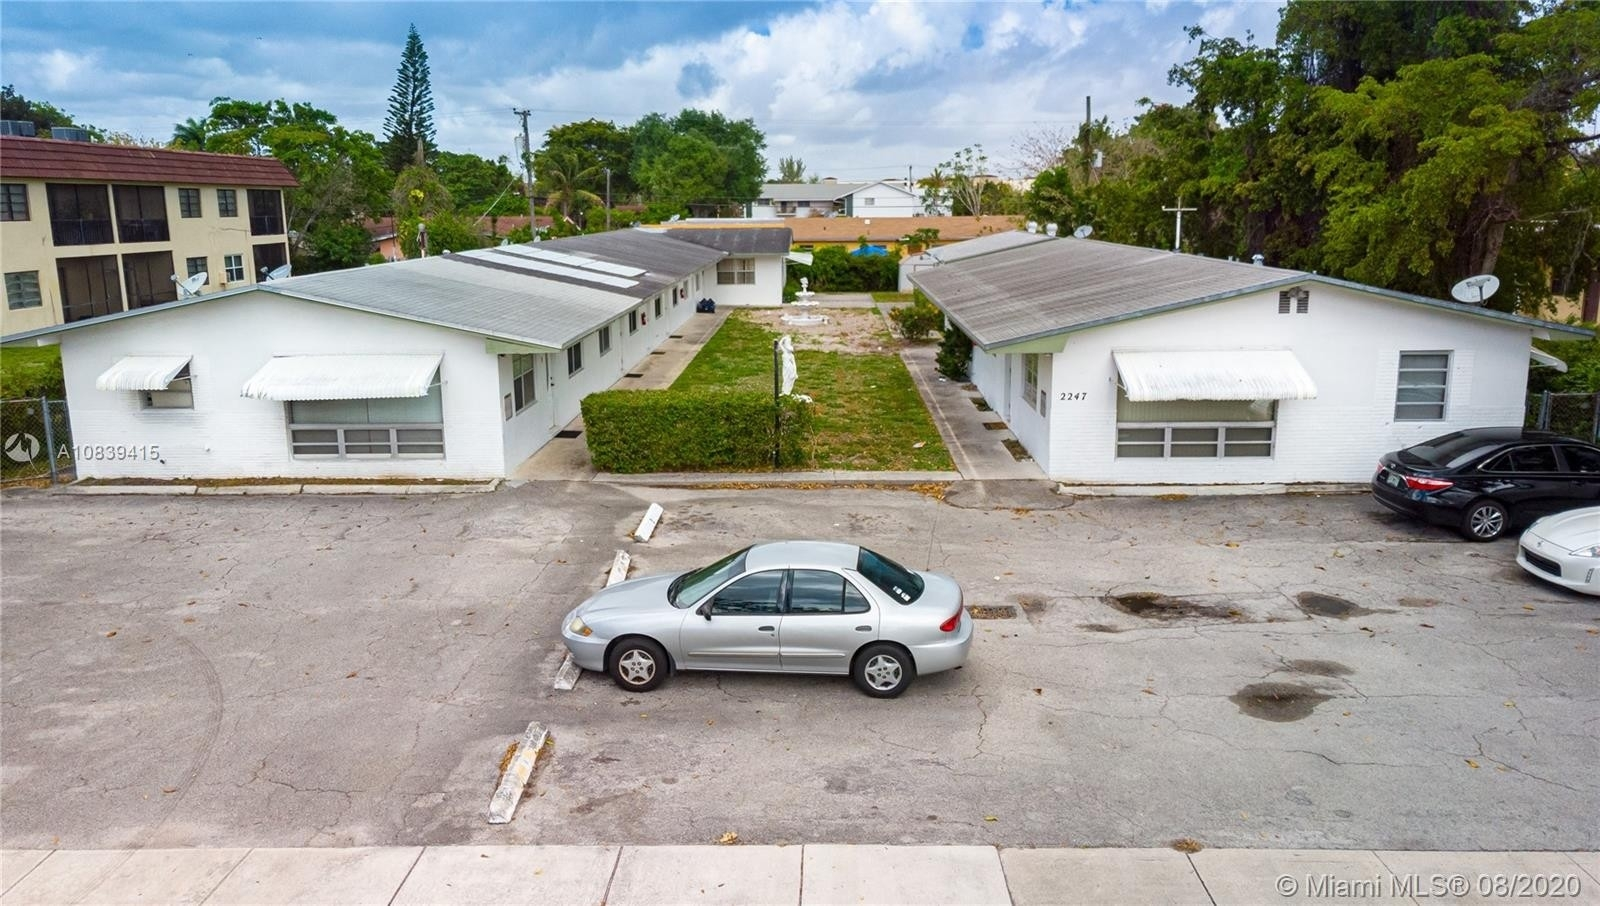 Casa unifamiliar multifamiliar por un Venta en North Central Hollywood, Hollywood, FL 33020